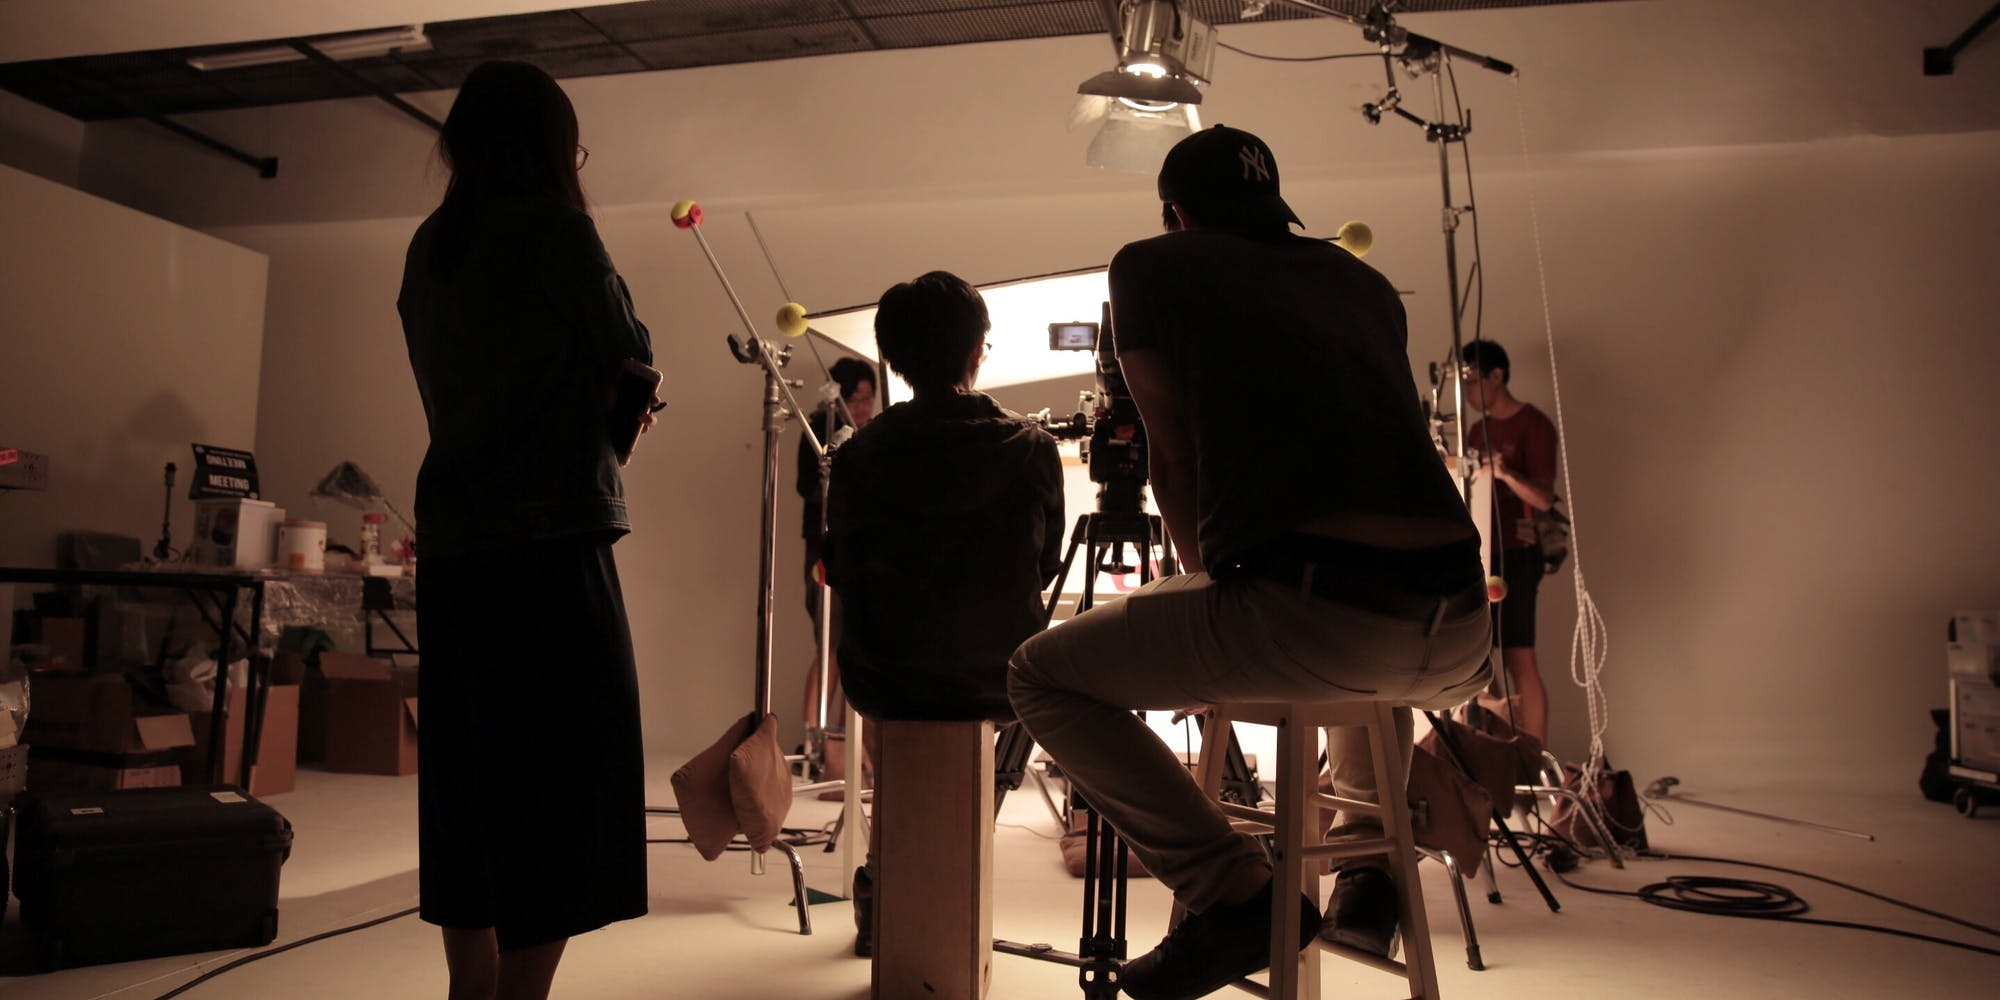 Behind the scenes of a production shoot at a studio